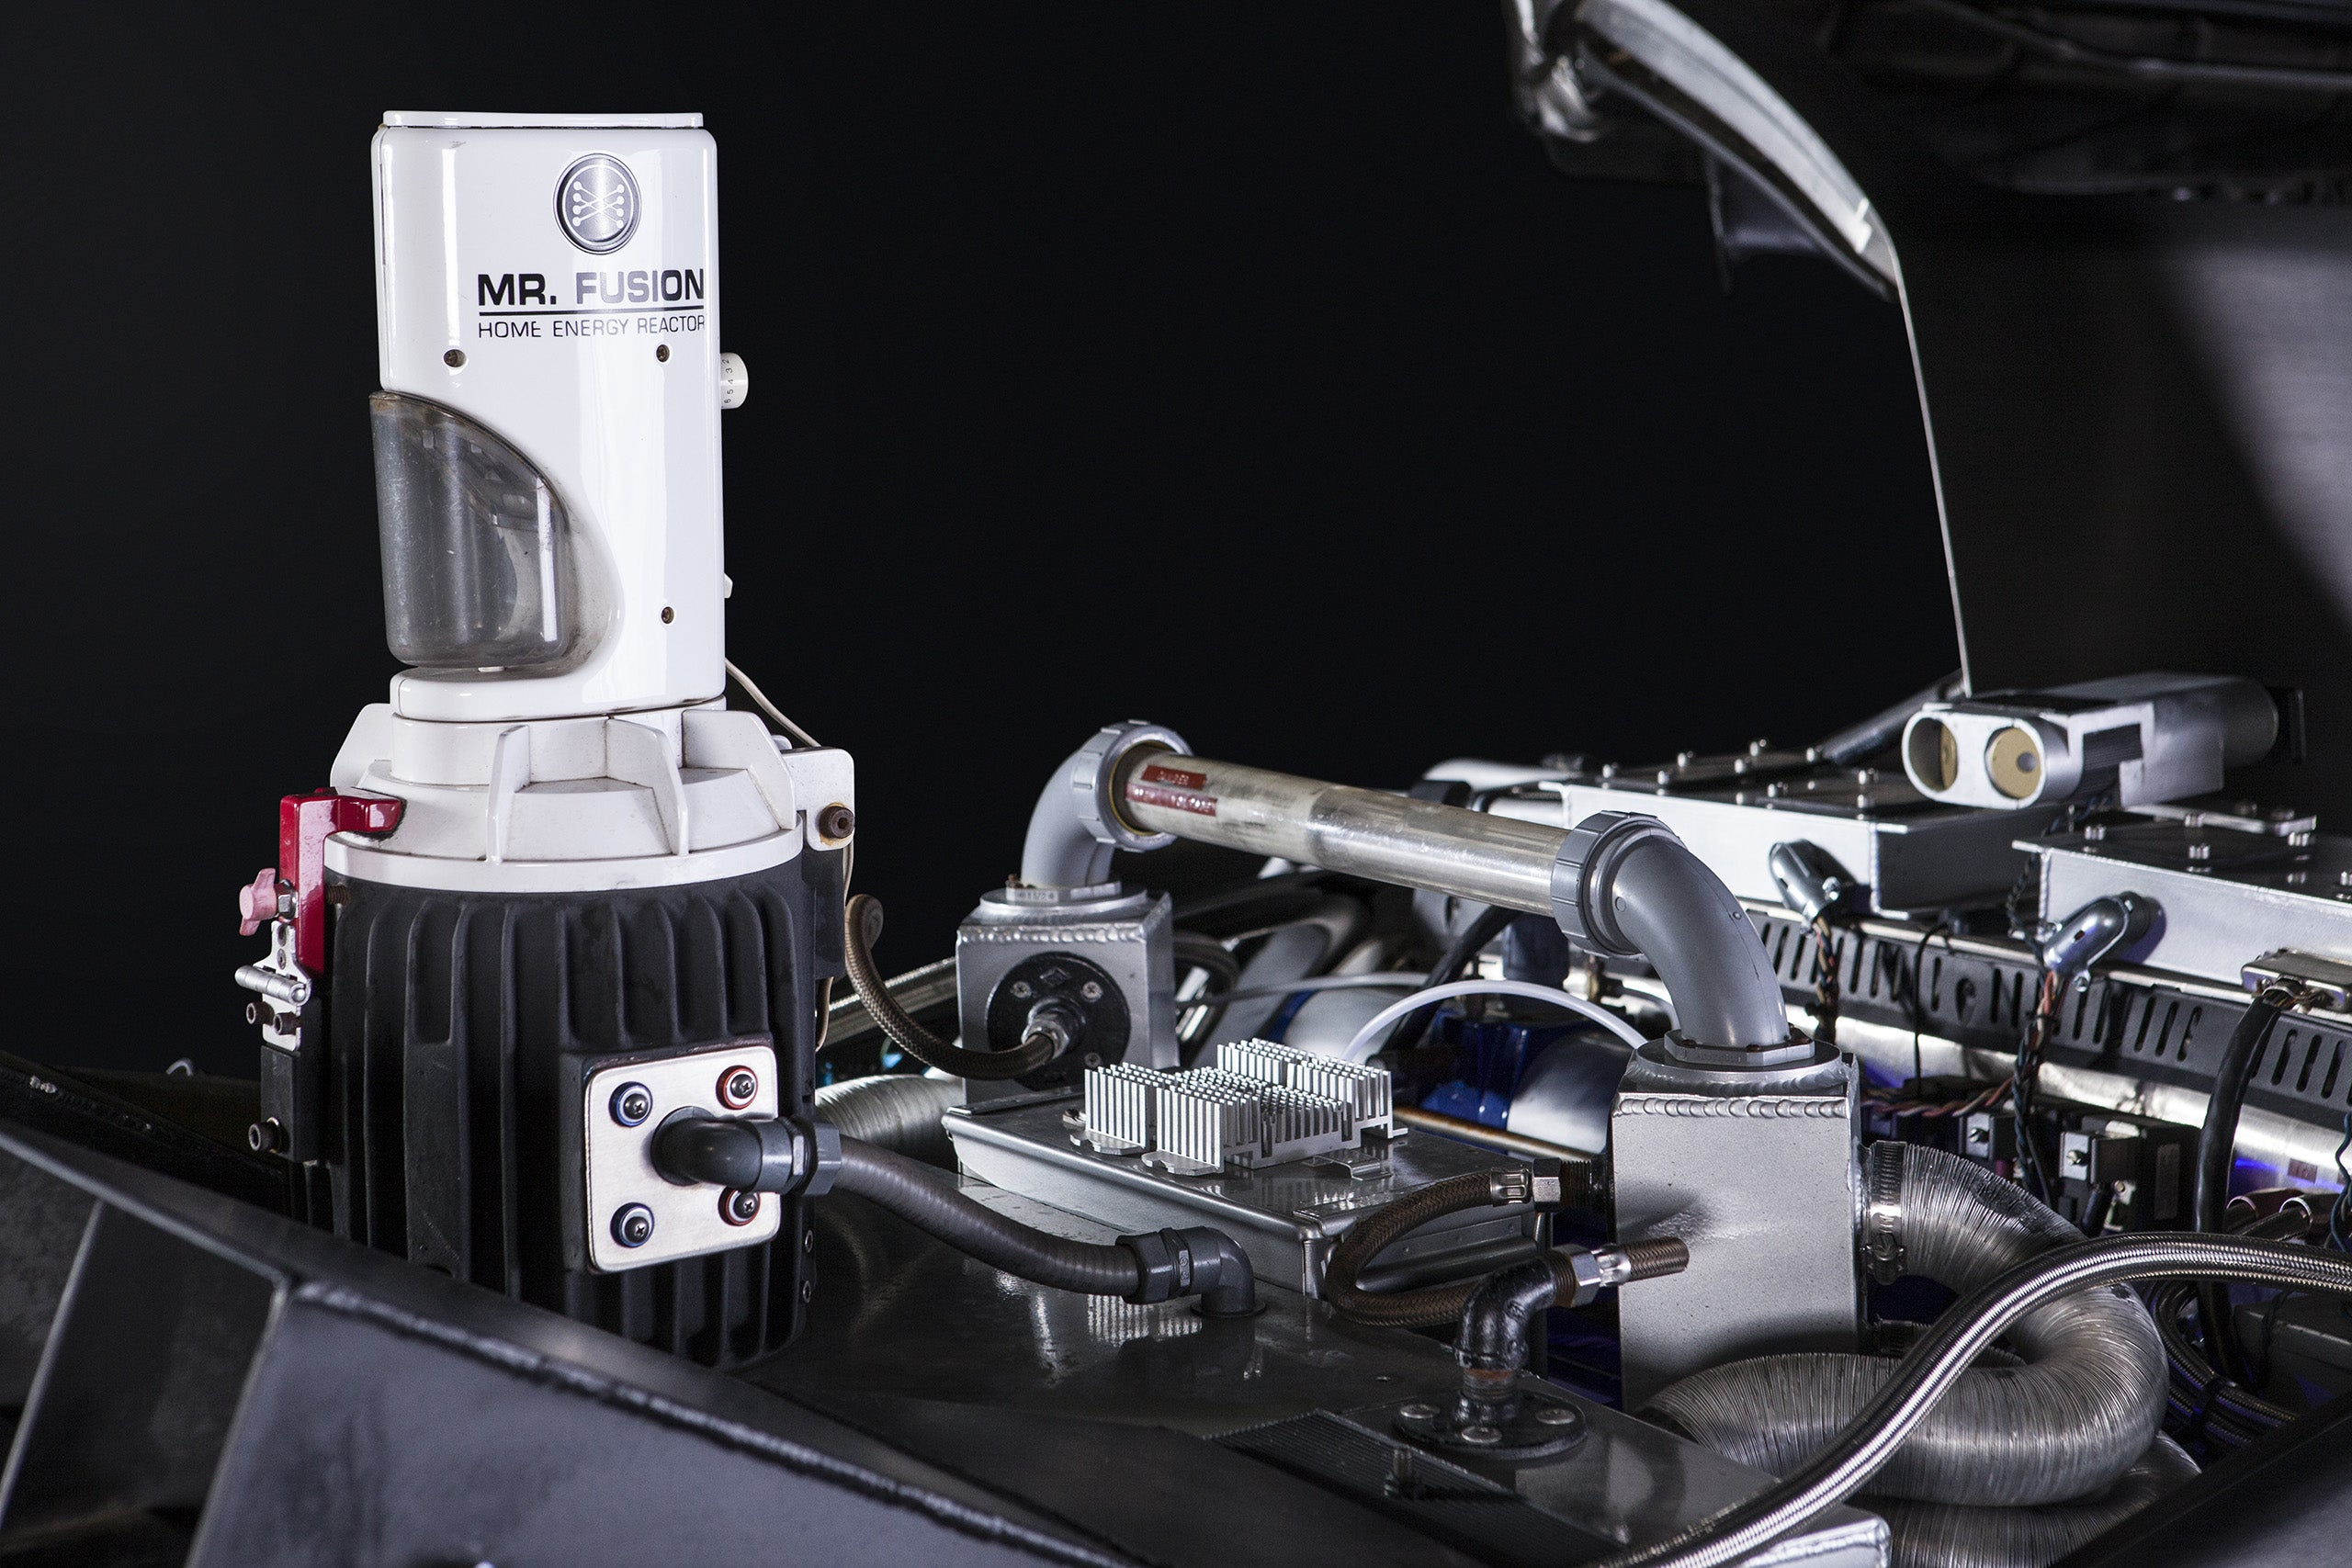 This Real-Life 'Mr. Fusion' Can Turn Leftovers Into Energy